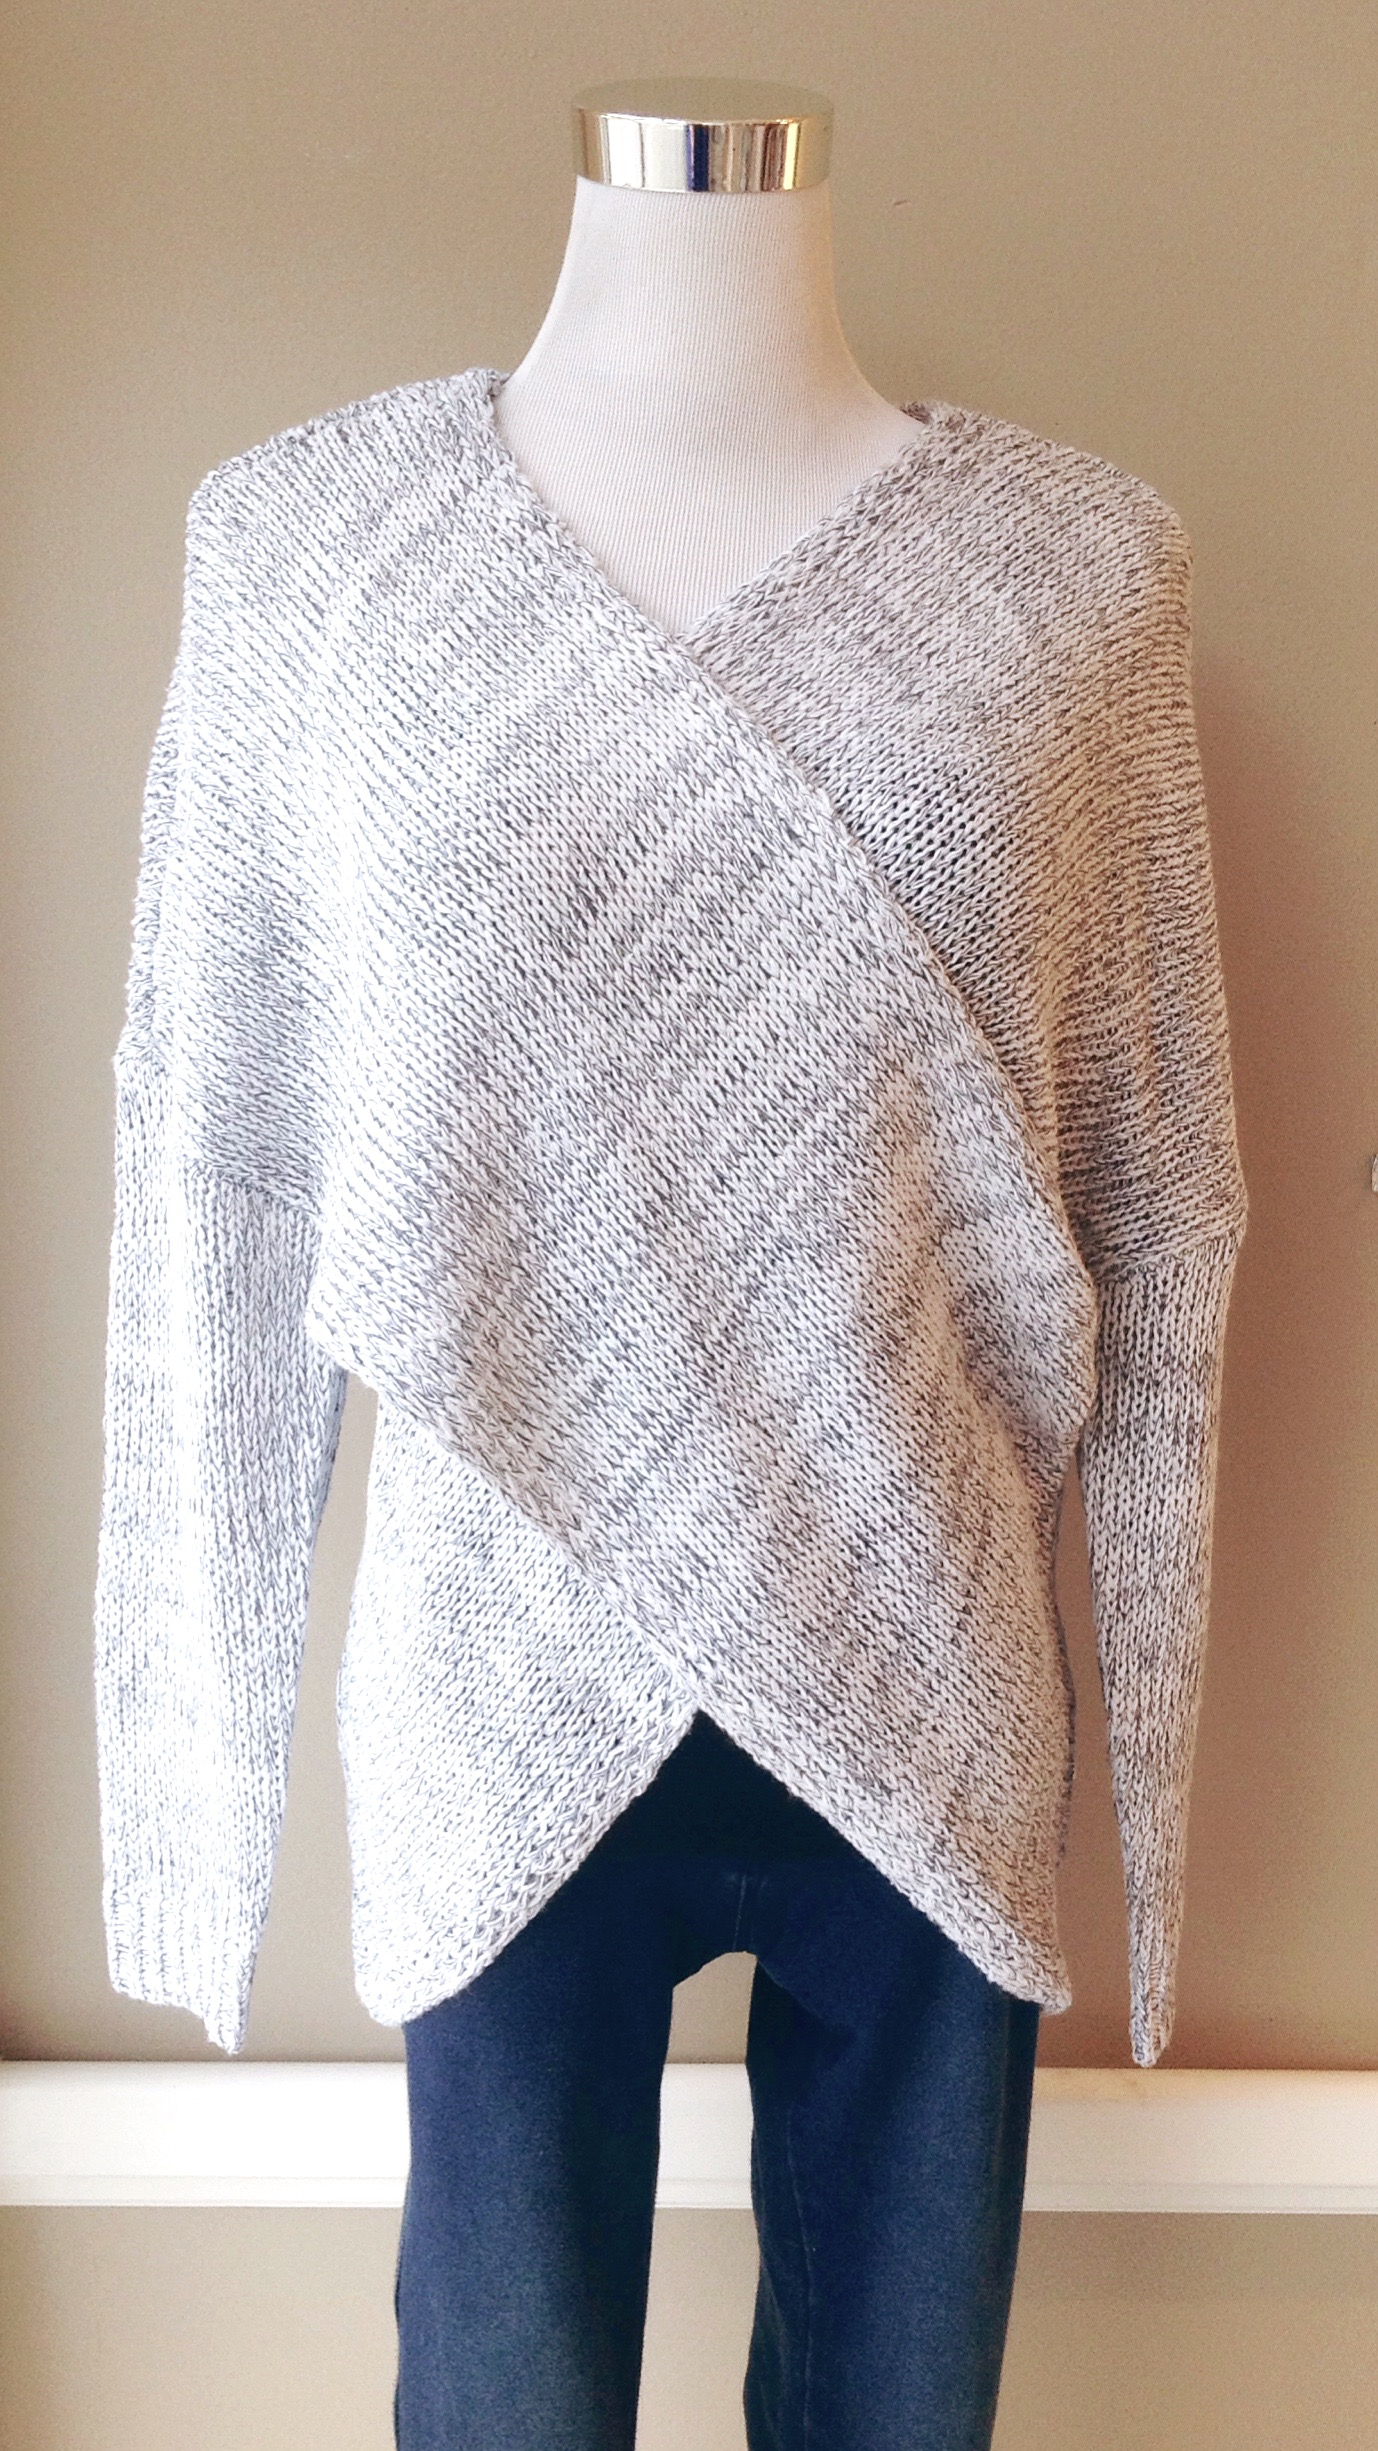 Cross front sweater in heather grey, $38